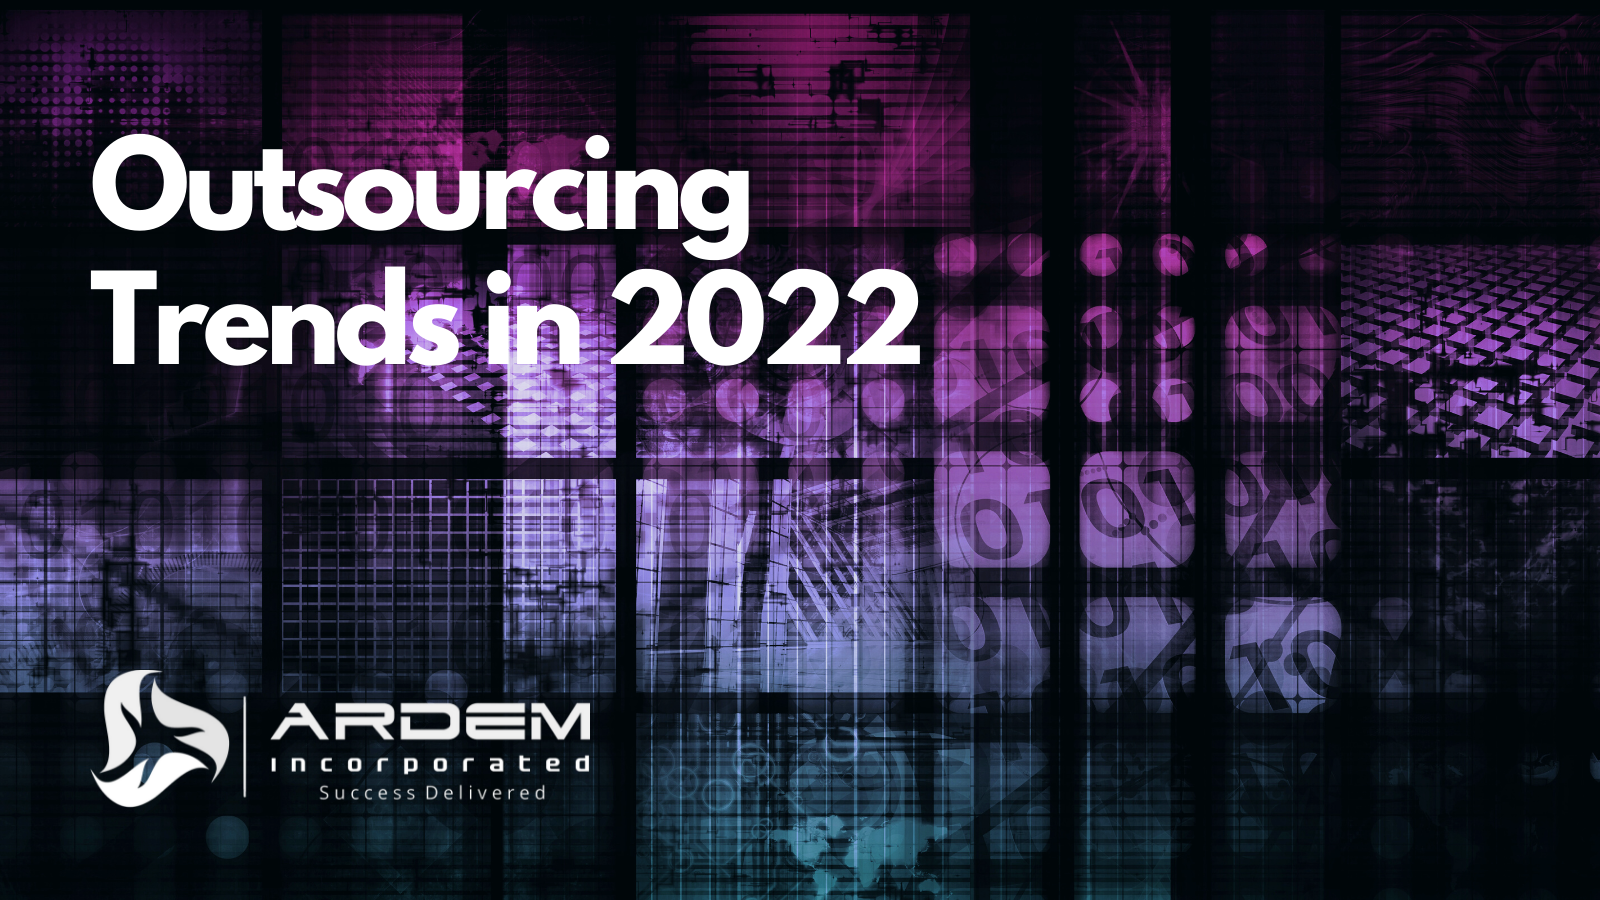 OUTSOURCING TRENDS